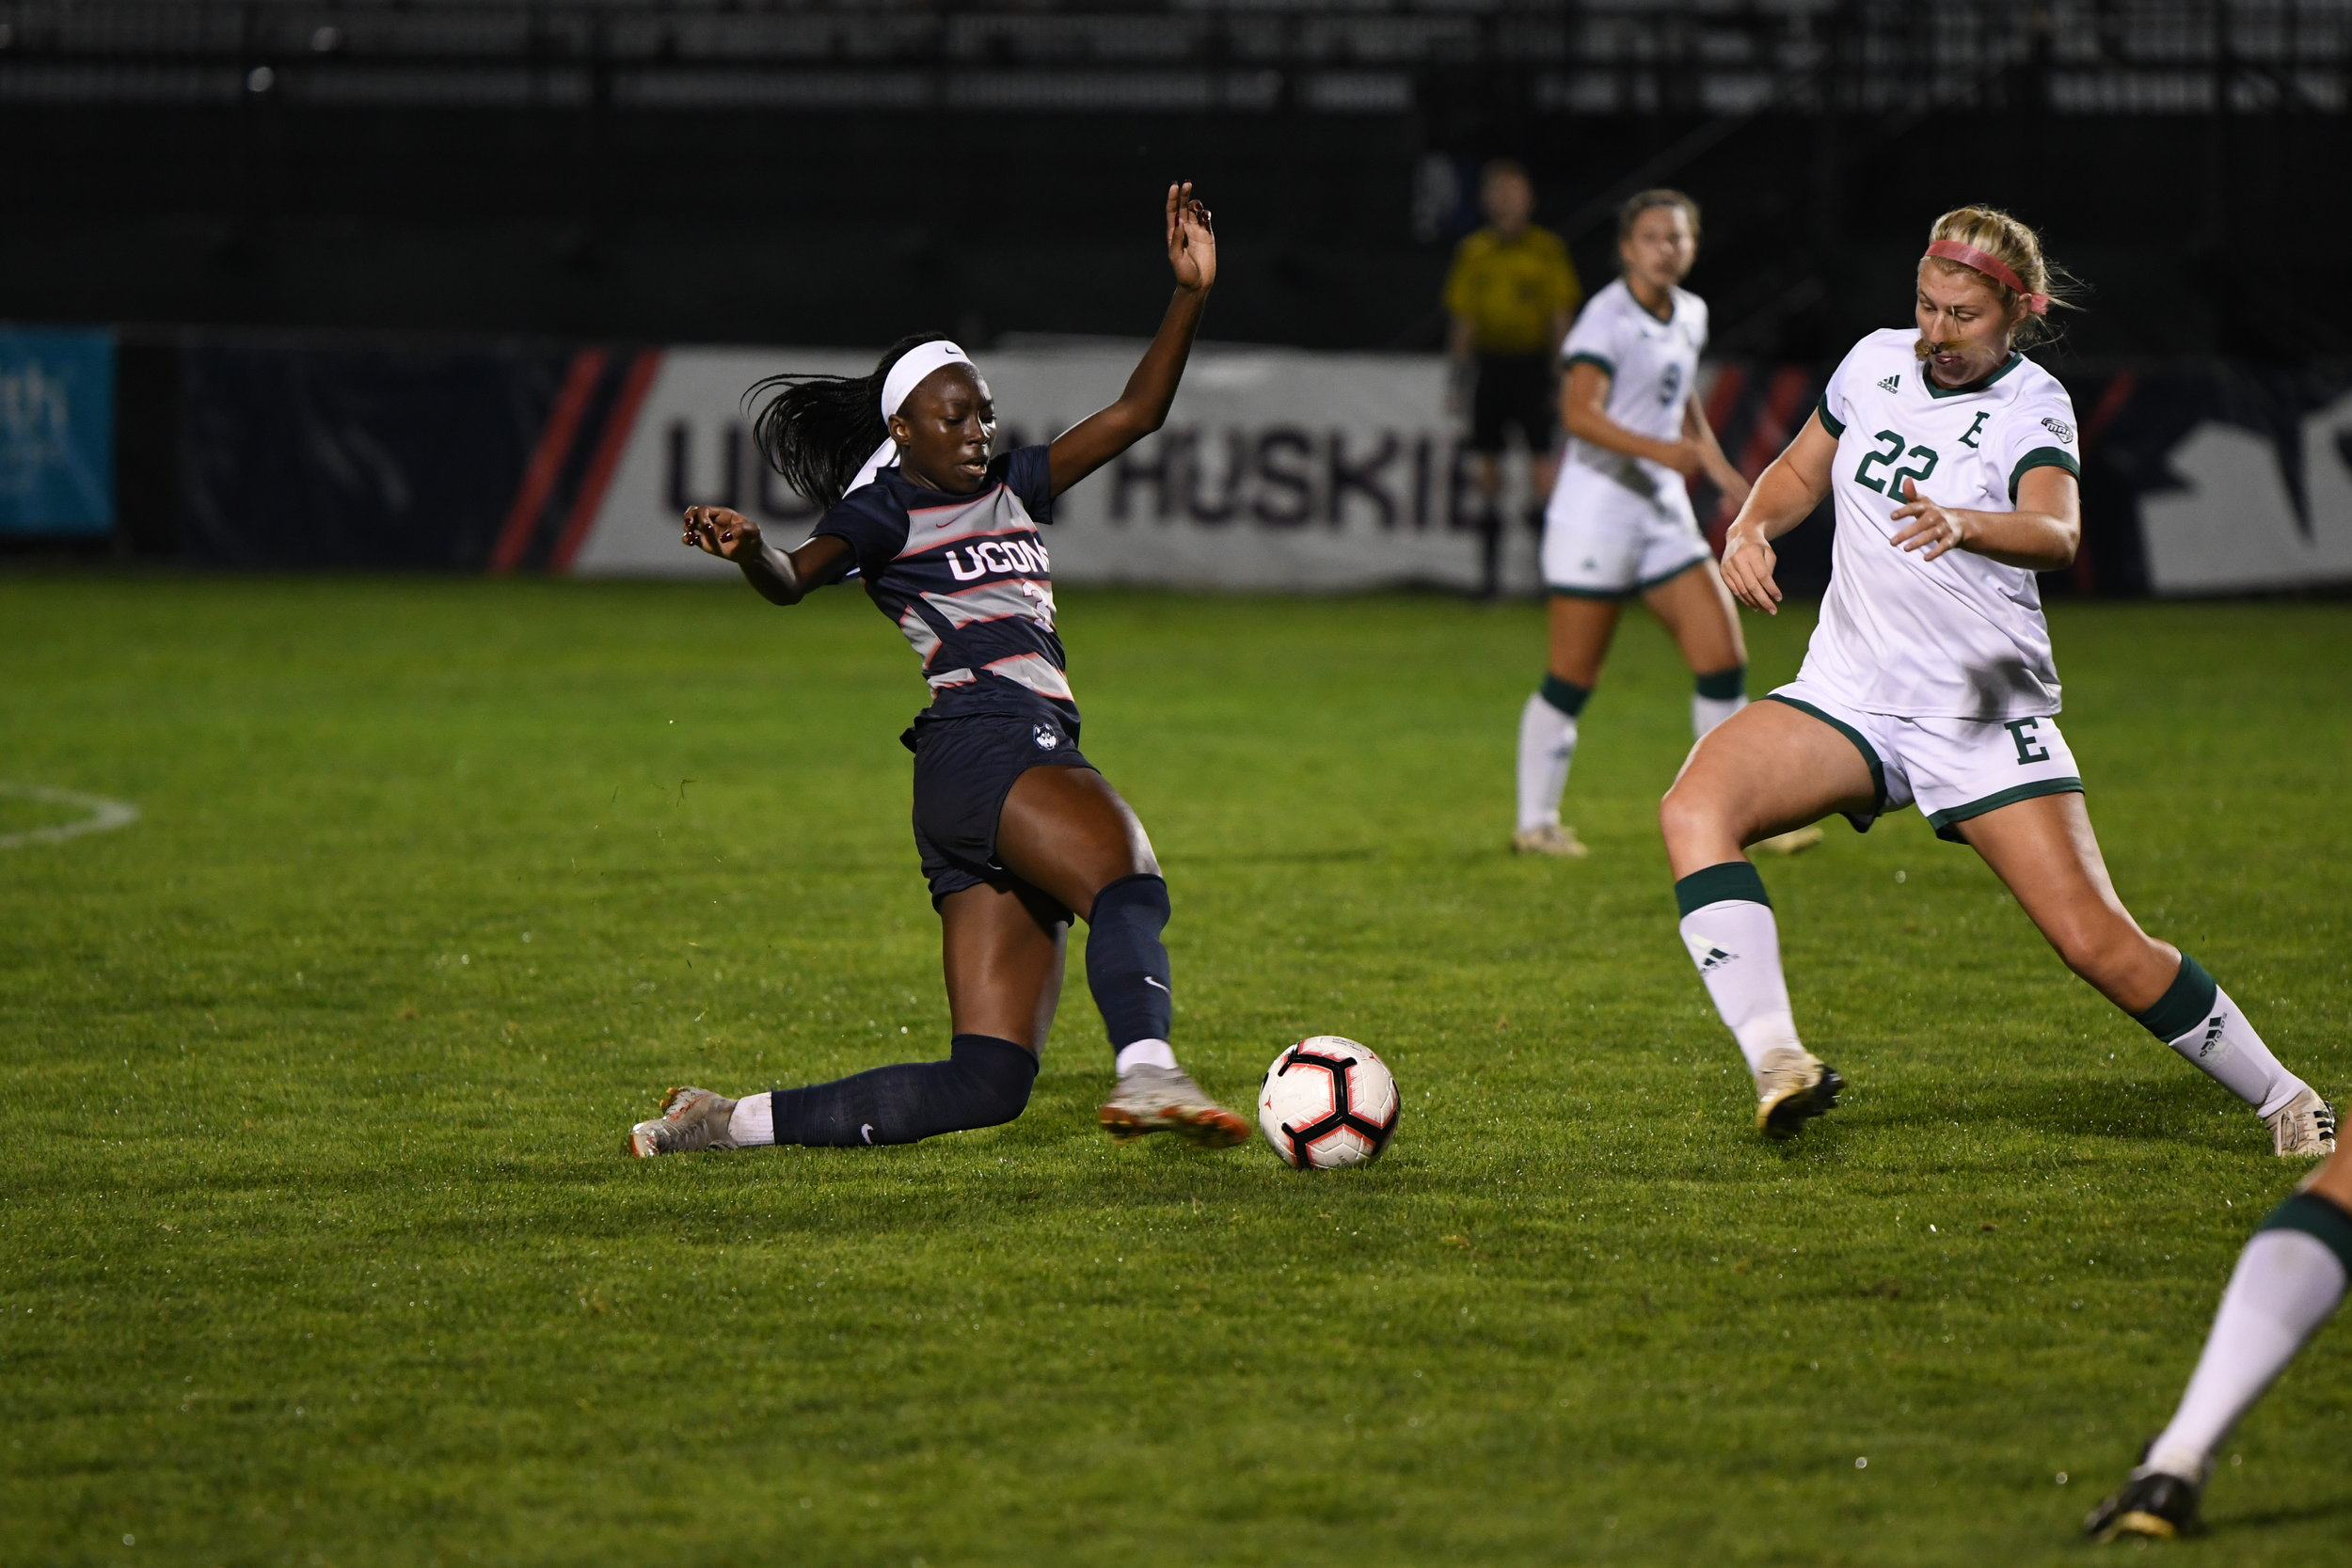 Yamilee Eveillard tries to keep the ball away from an Eastern Michigan defender during their match Sept. 14, 2018. (Nicholas Hampton/ The Daily Campus)